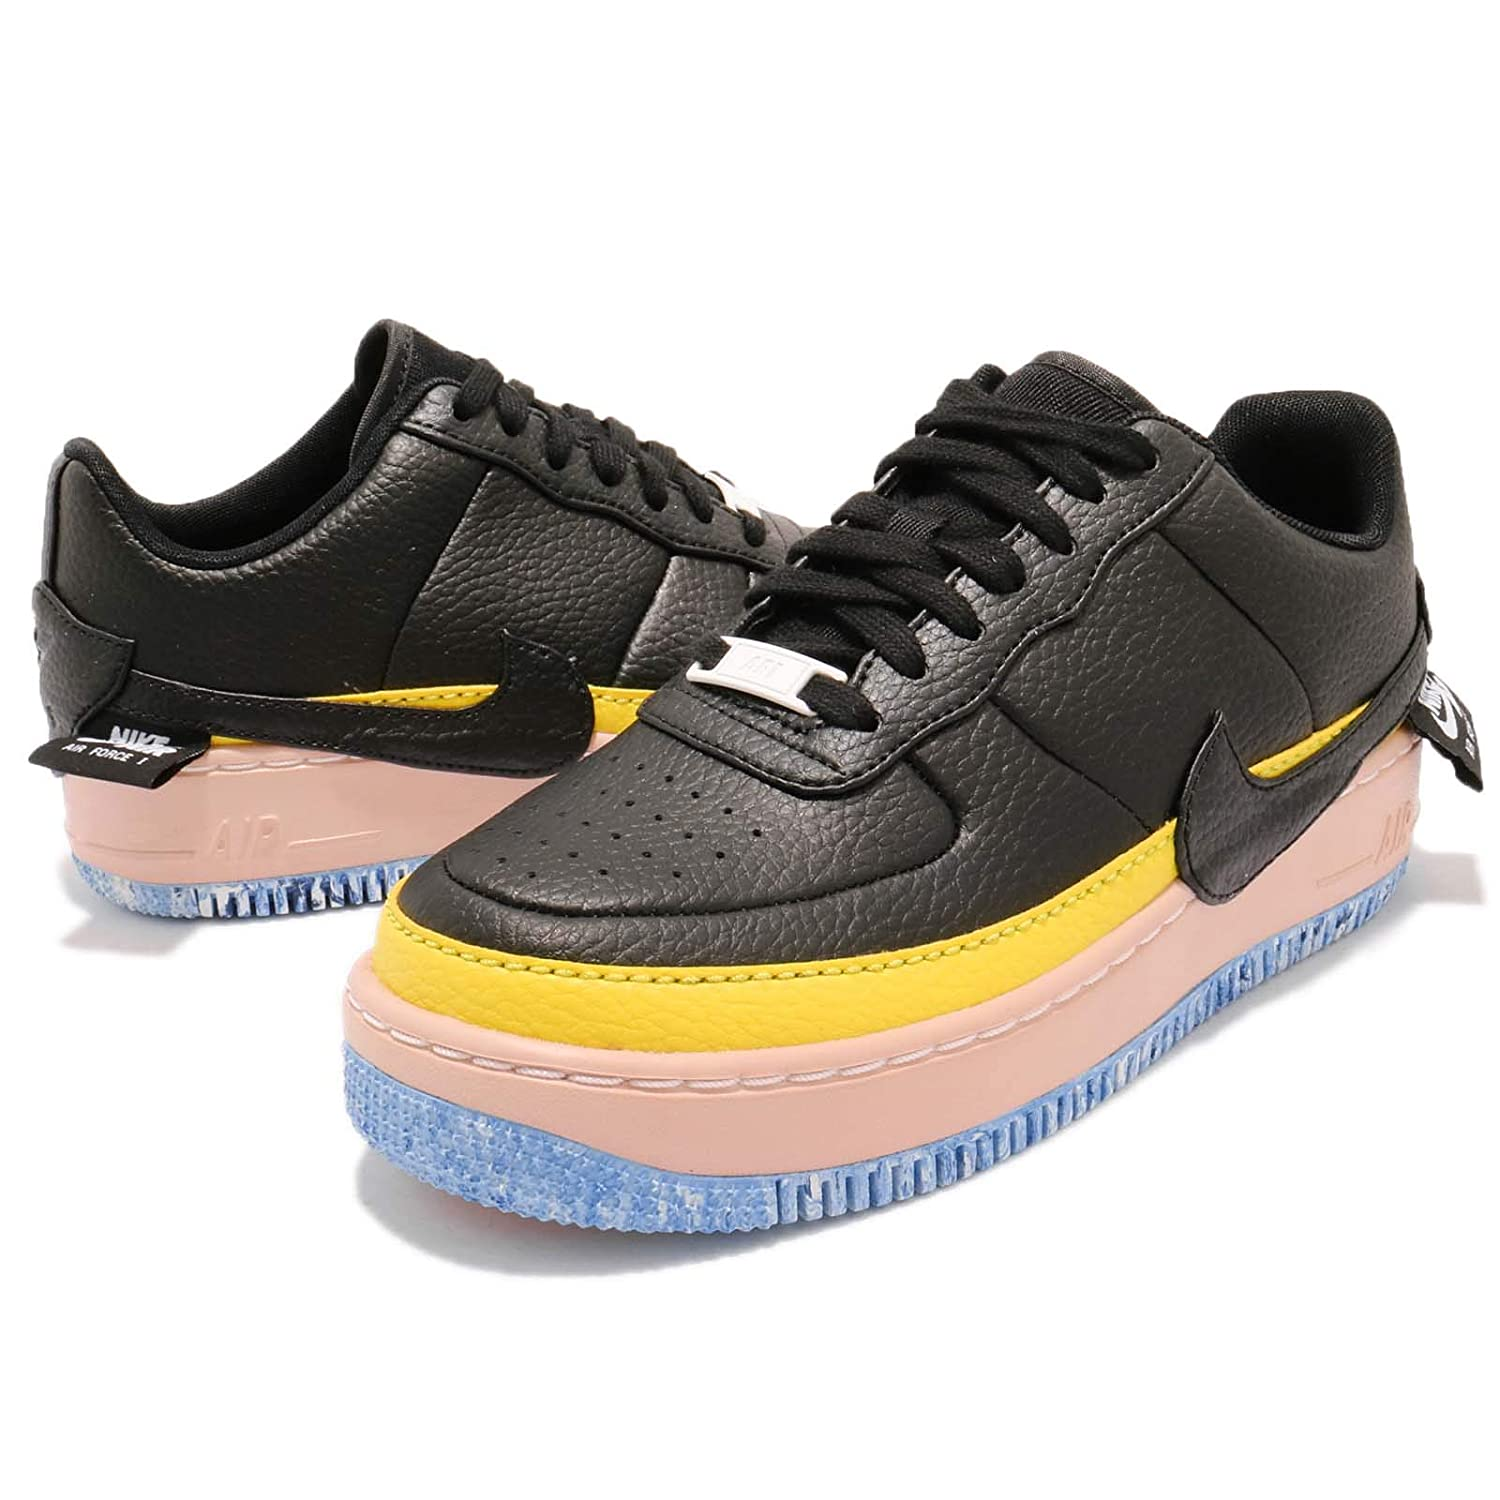 Nike Womens AIR Force 1 Size 8.5 Jester XX SE